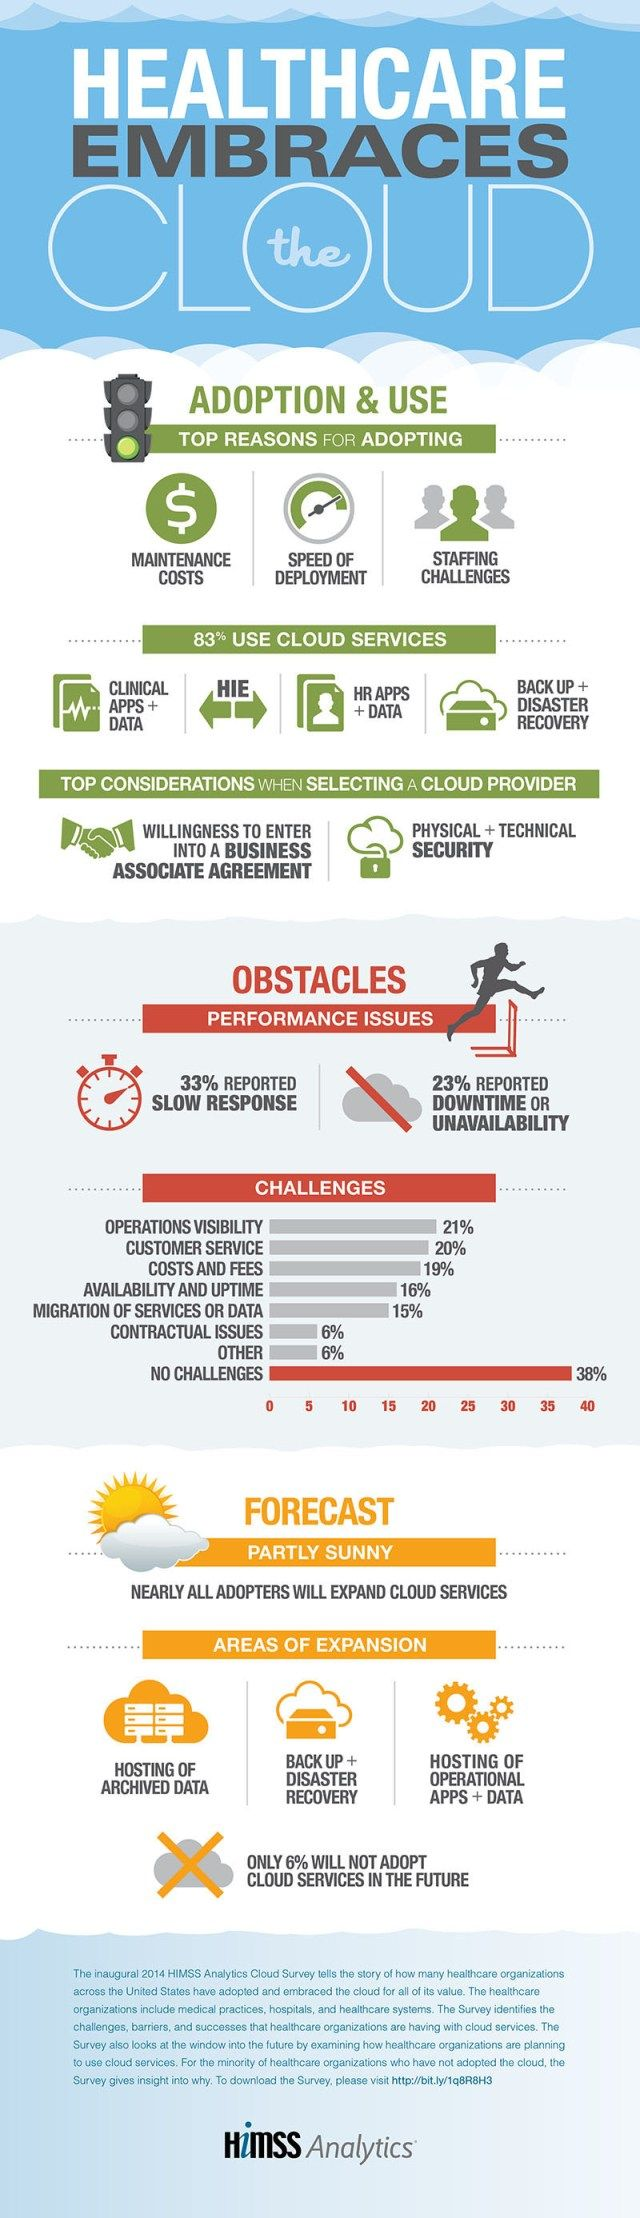 #Healthcare #Cloud #Infographic